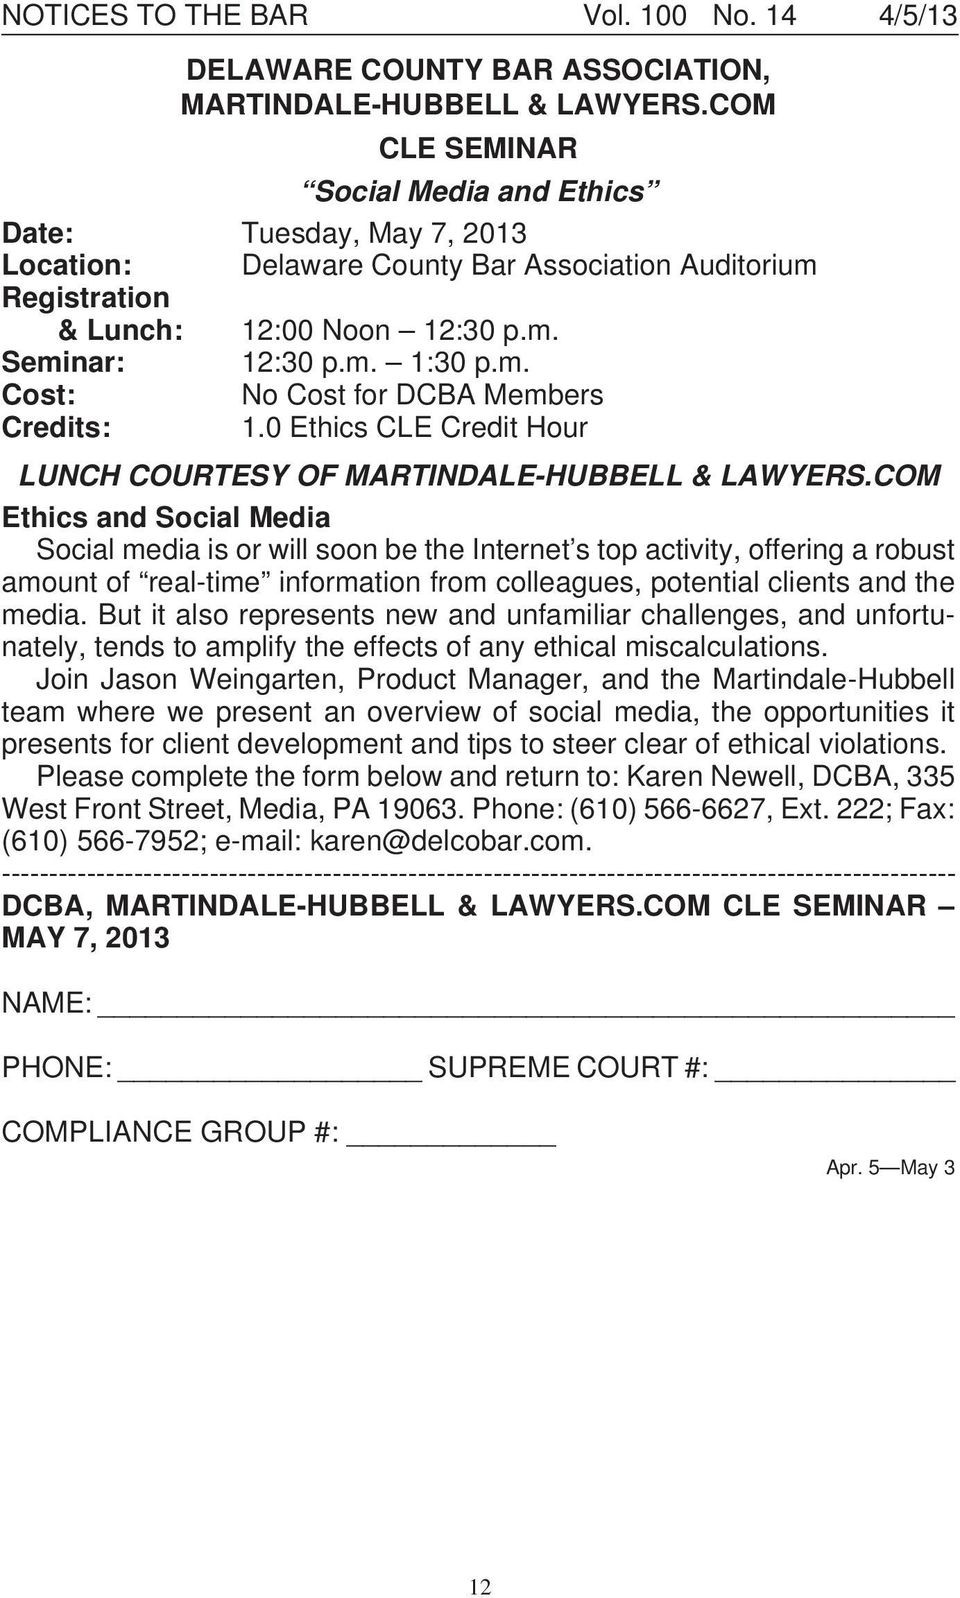 0 Ethics CLE Credit Hour LUNCH COURTESY OF MARTINDALE-HUBBELL & LAWYERS.